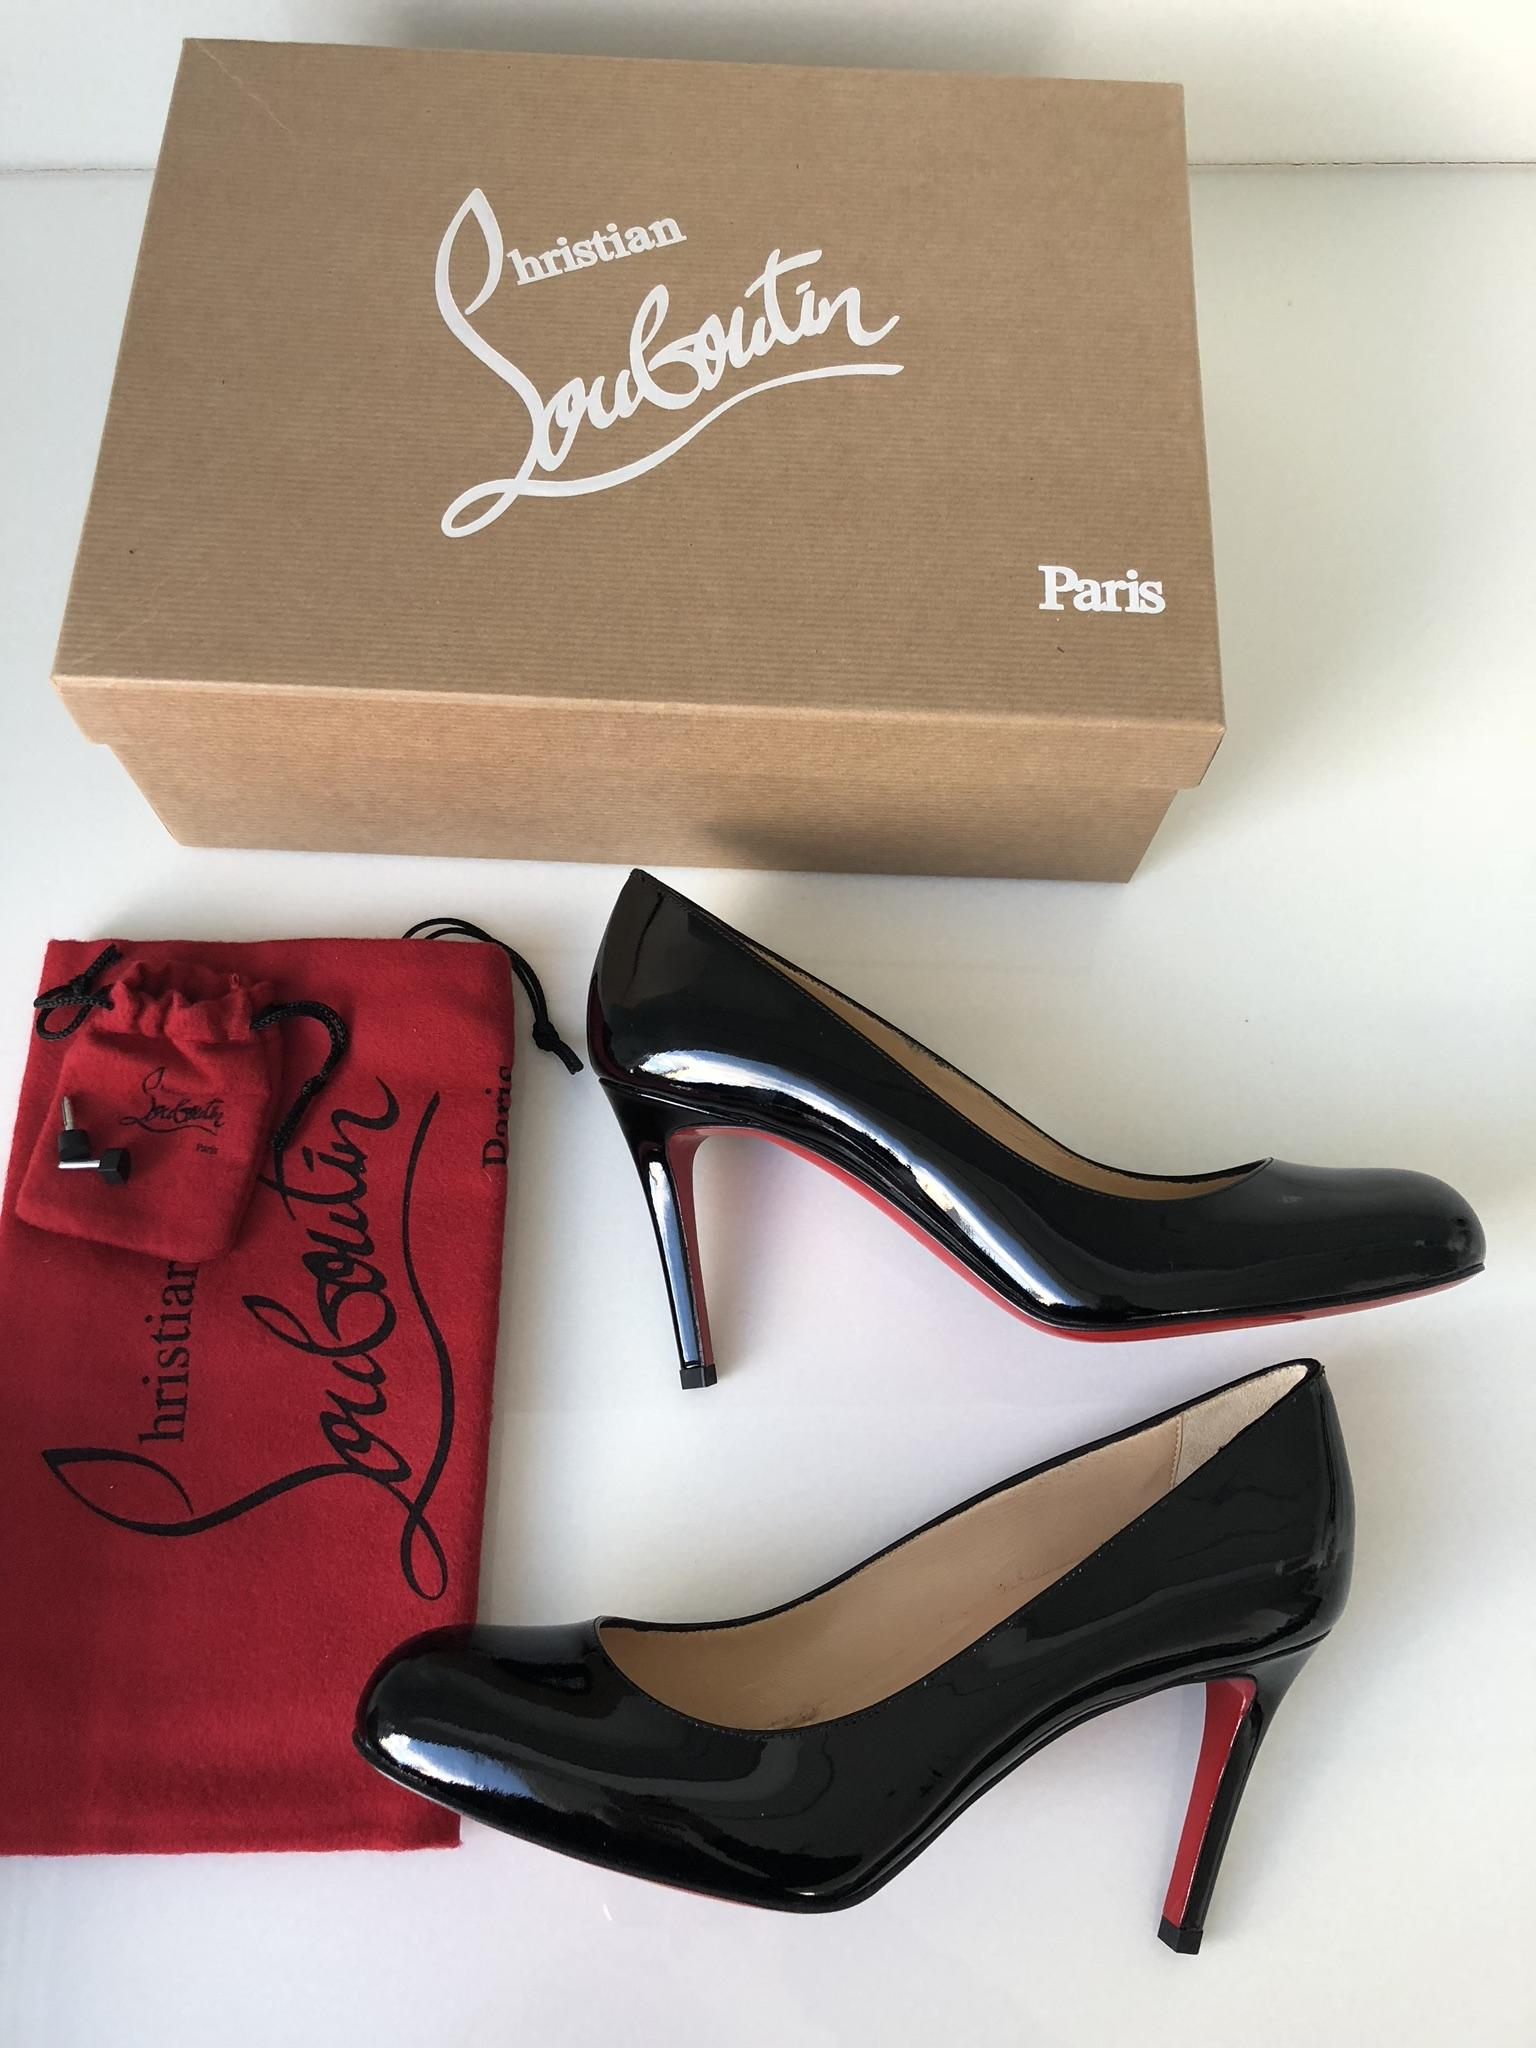 4cda5ead73 ... Christian Louboutin Black Classic Simple 85 Patent Patent Patent  Leather Round Toe Pumps Size EU 36 ...